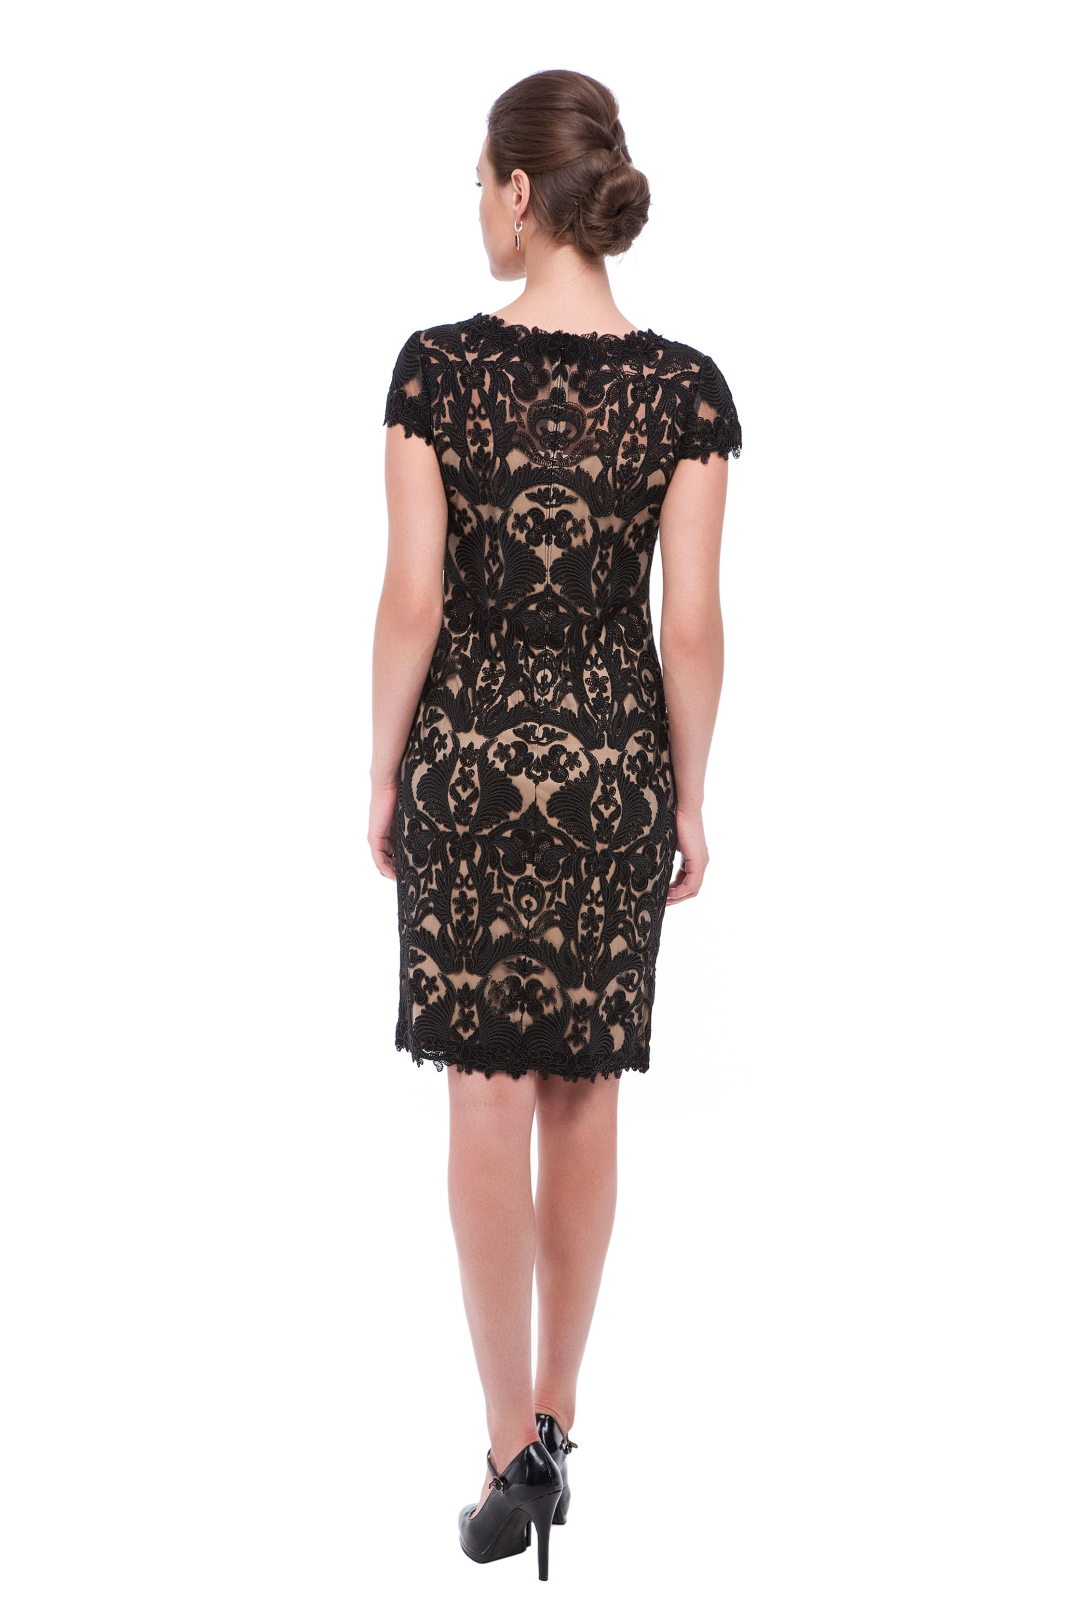 Black Embroidery on Tulle Dress